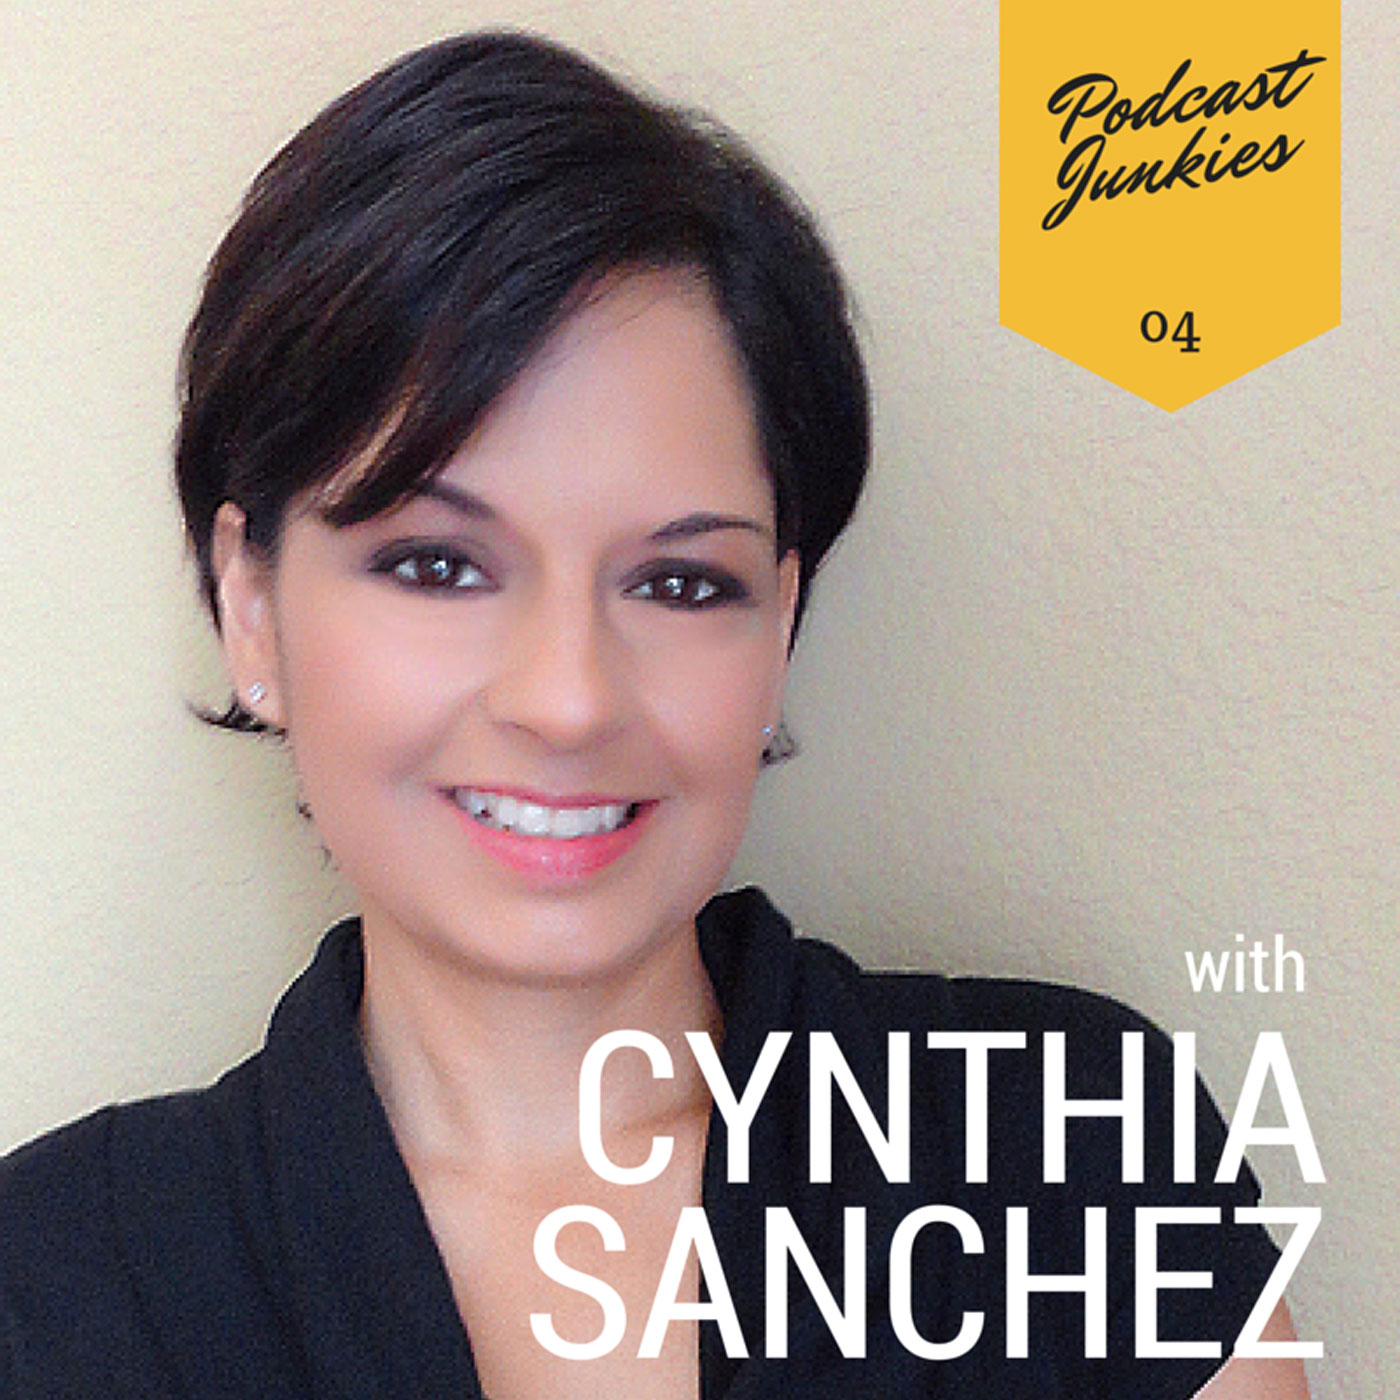 004 Cynthia Sanchez | She Loves Her Geek Podcasts, Pins & Family Time